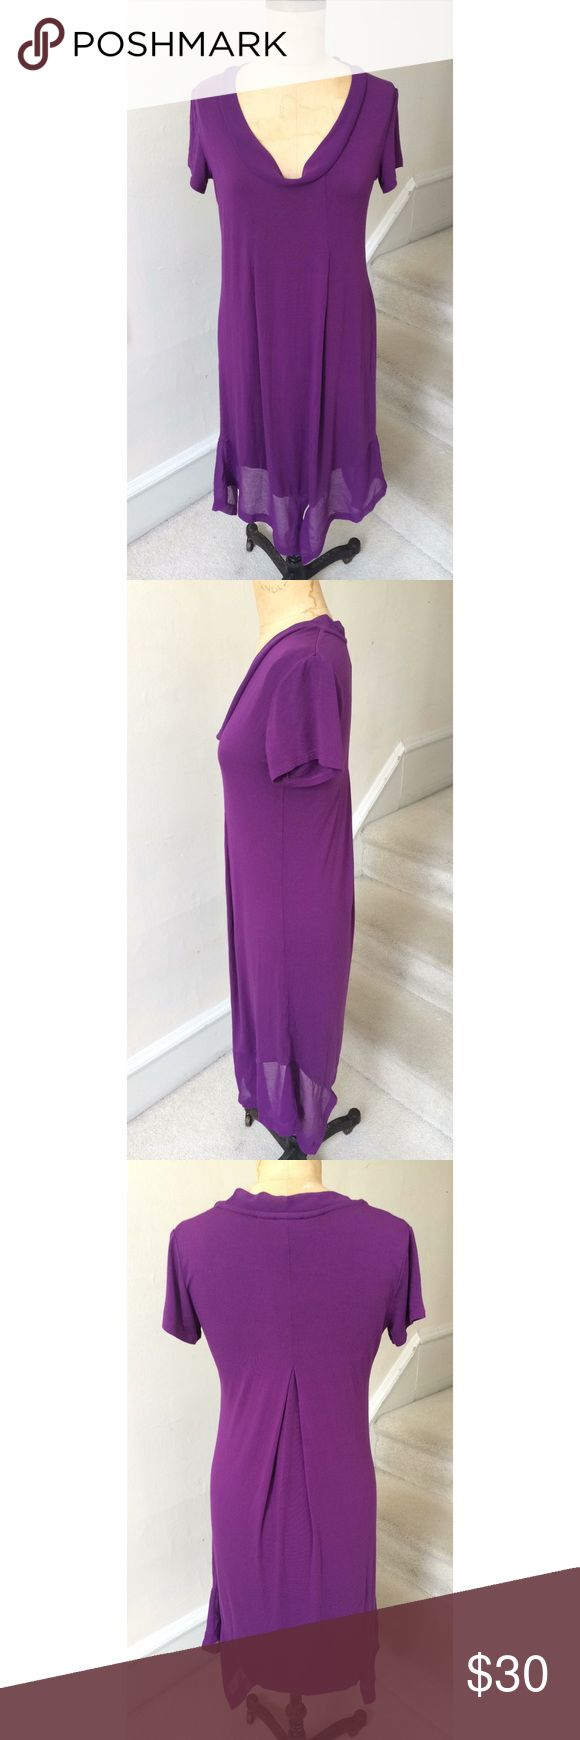 """EUC Soft Purple Dress Gorgeous color and stylishly designed dress by Serena Williams Signature Statement collection. Worn once or twice and needs a new home! Bust 15 1/2"""" waist 14 1/2"""" hips 18 1/2""""  length from underarm down is 31"""" Serena Williams Dresses"""